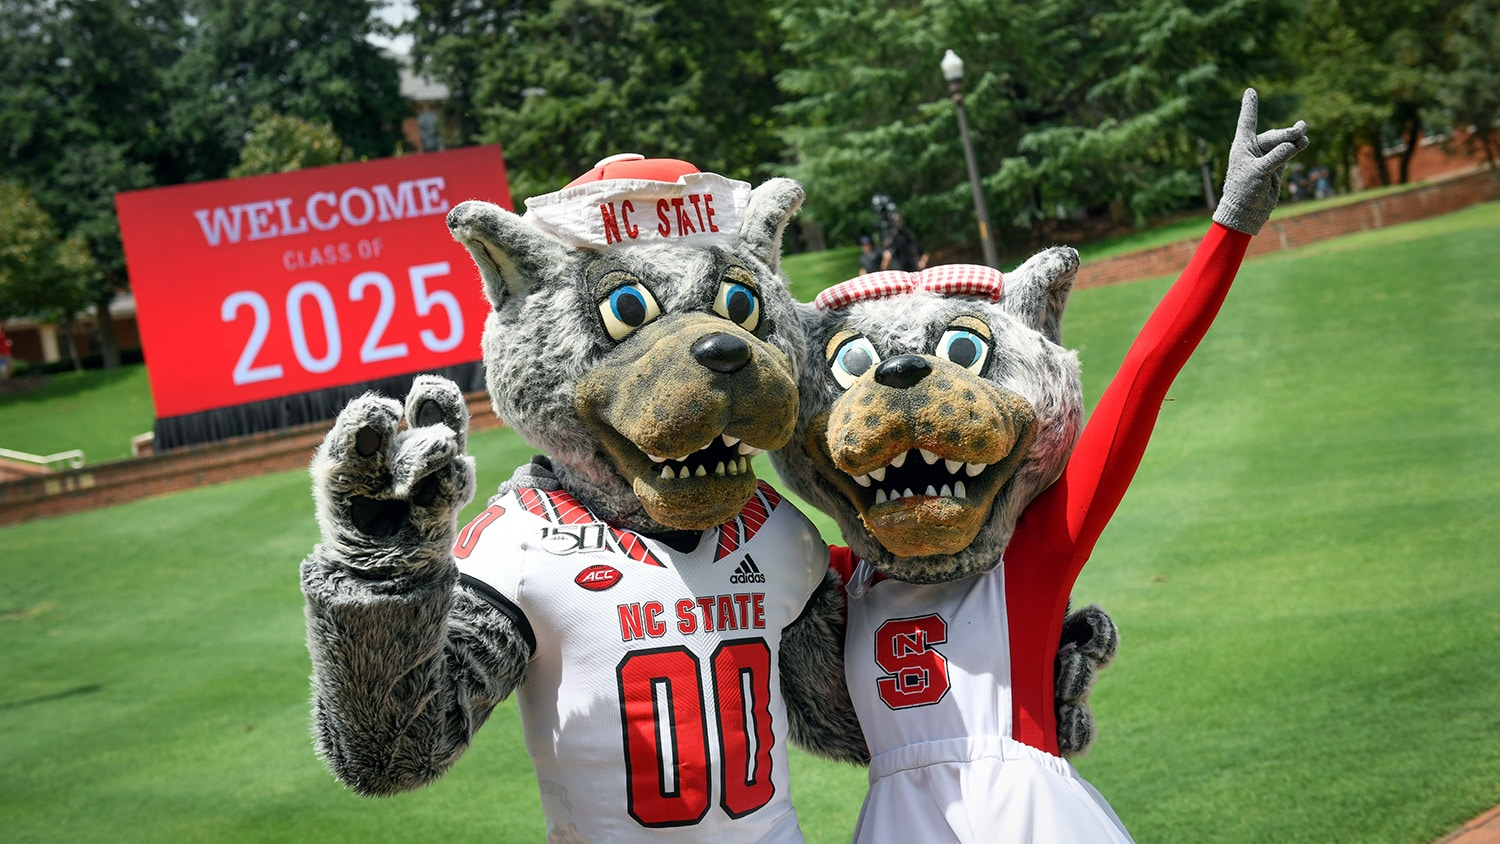 Mr. and Mrs. Wuf in front of a sign that says Welcome, Class of 2025